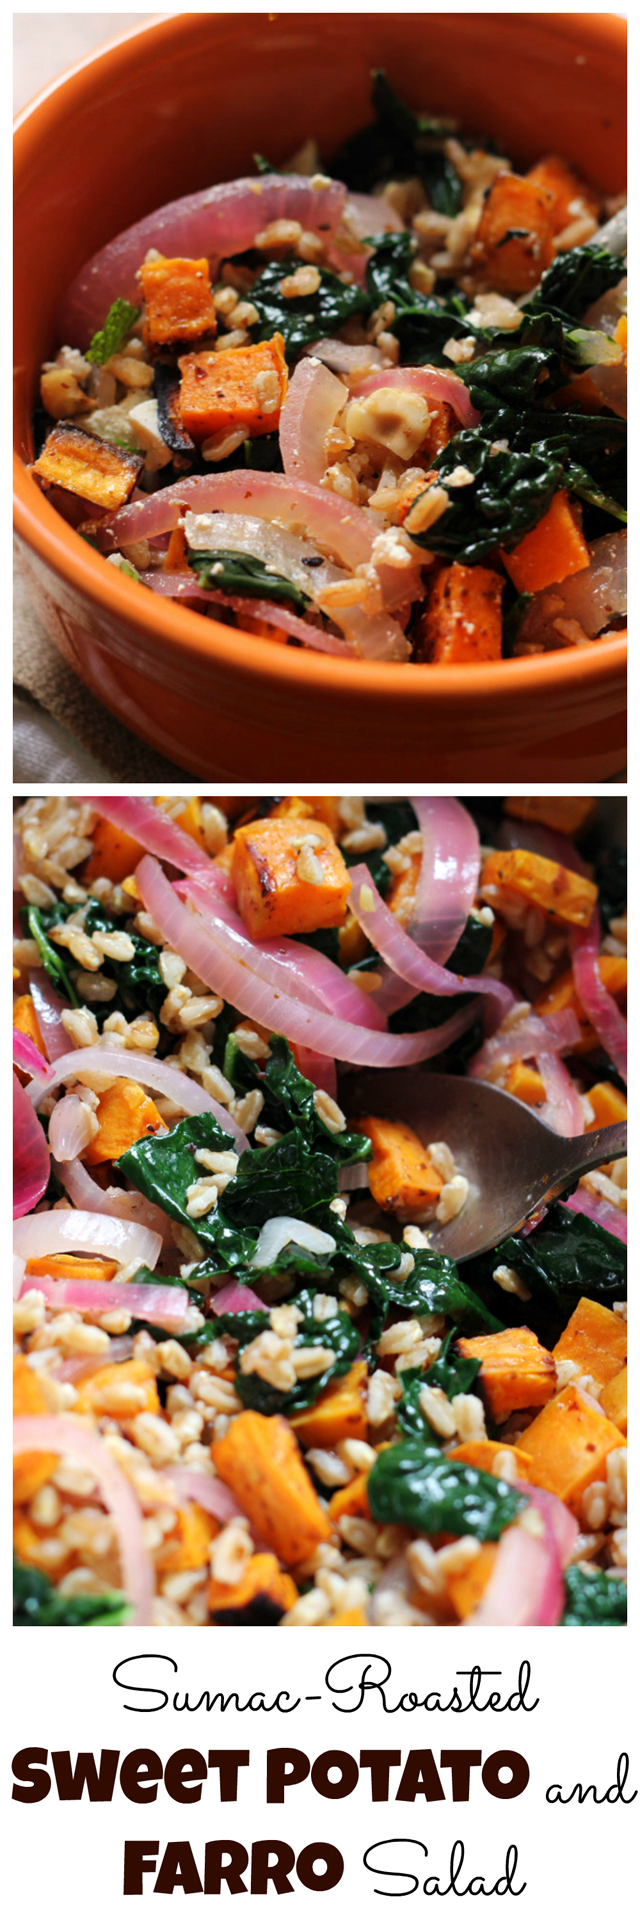 sumac-roasted sweet potato and farro salad